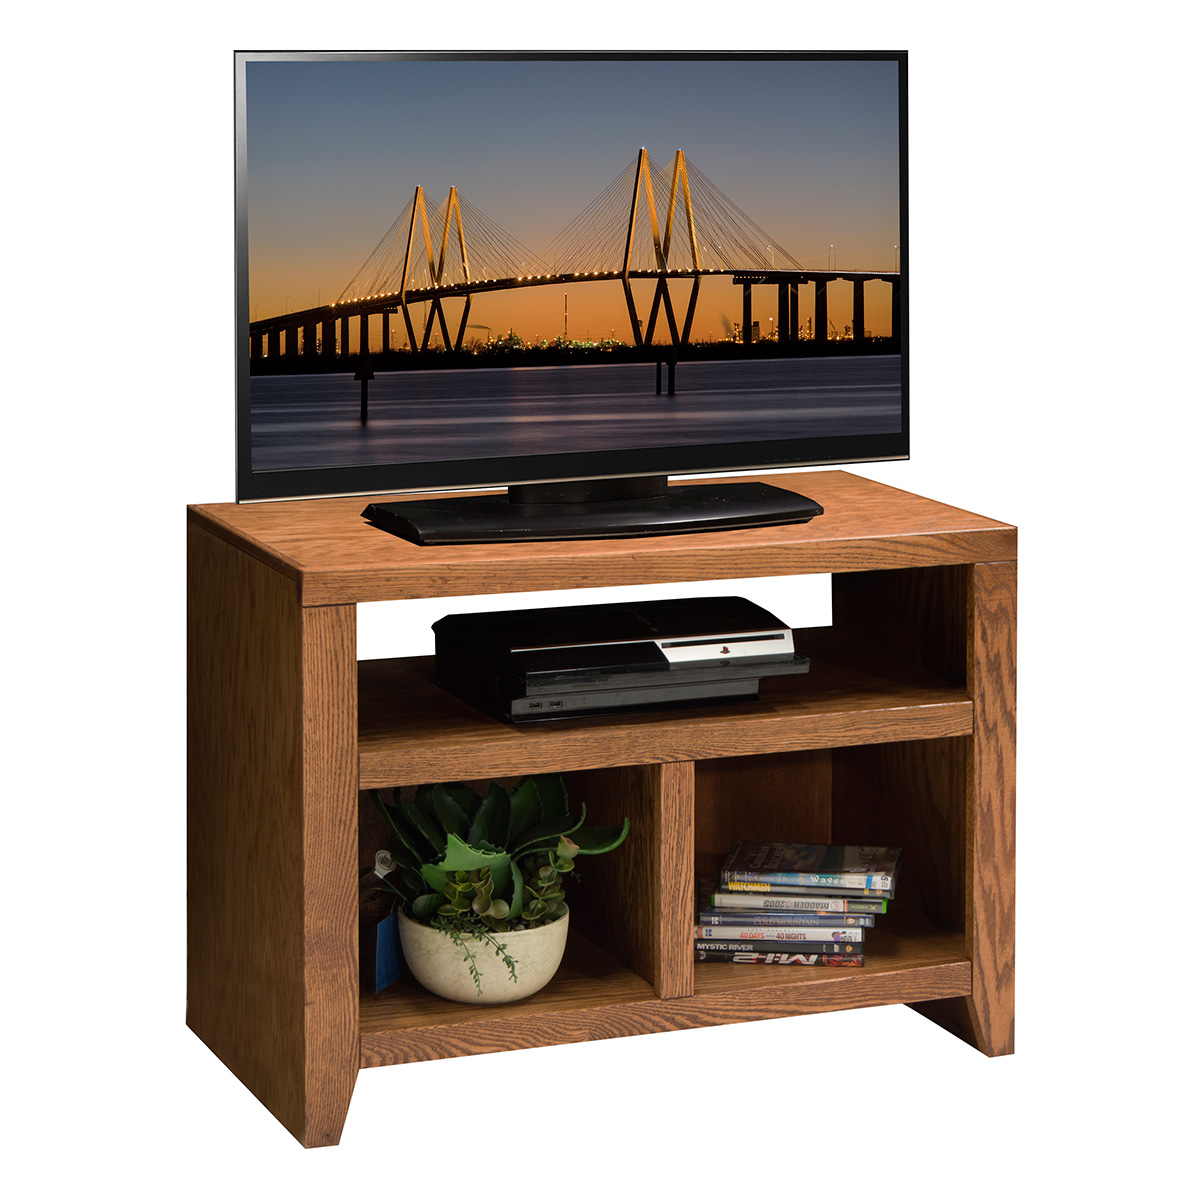 Legends furniture cl1210 city loft 32 tv stand cart in golden oak Home design golden city furniture